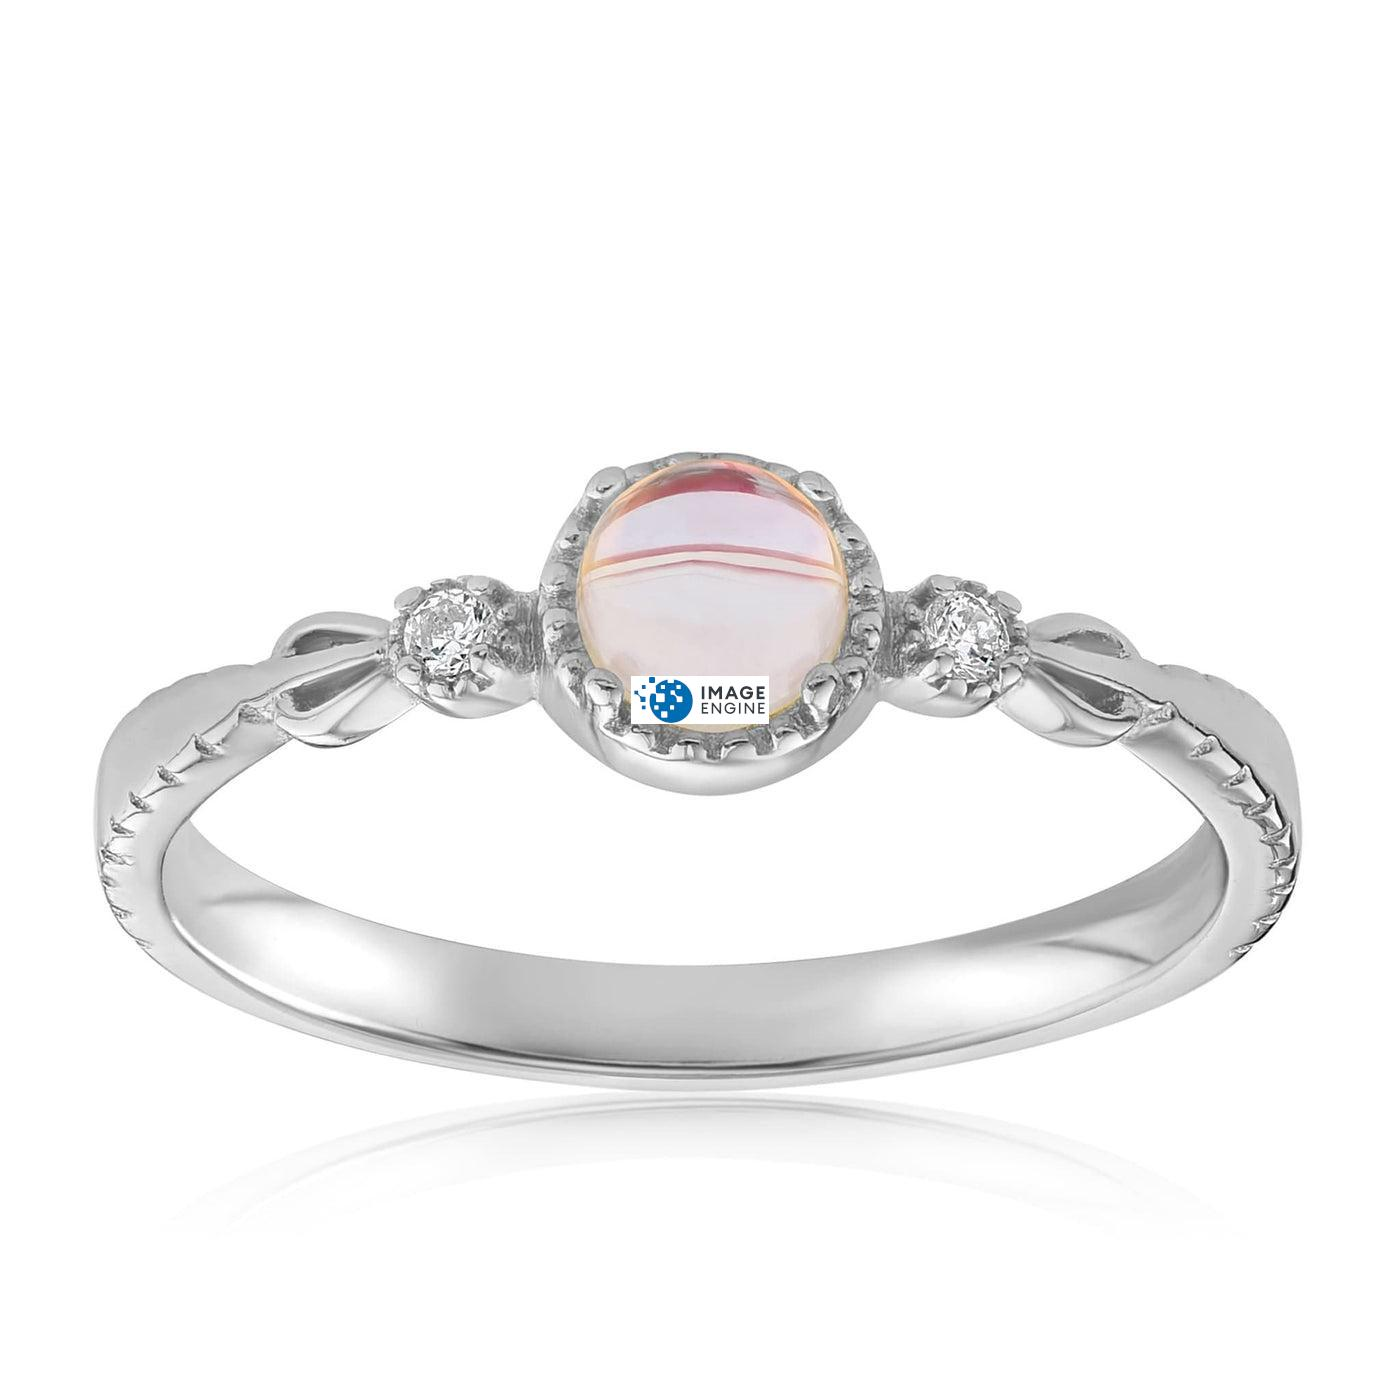 Mystic Moonstone Mood Ring - Front View Facing Up - 925 Sterling Silver